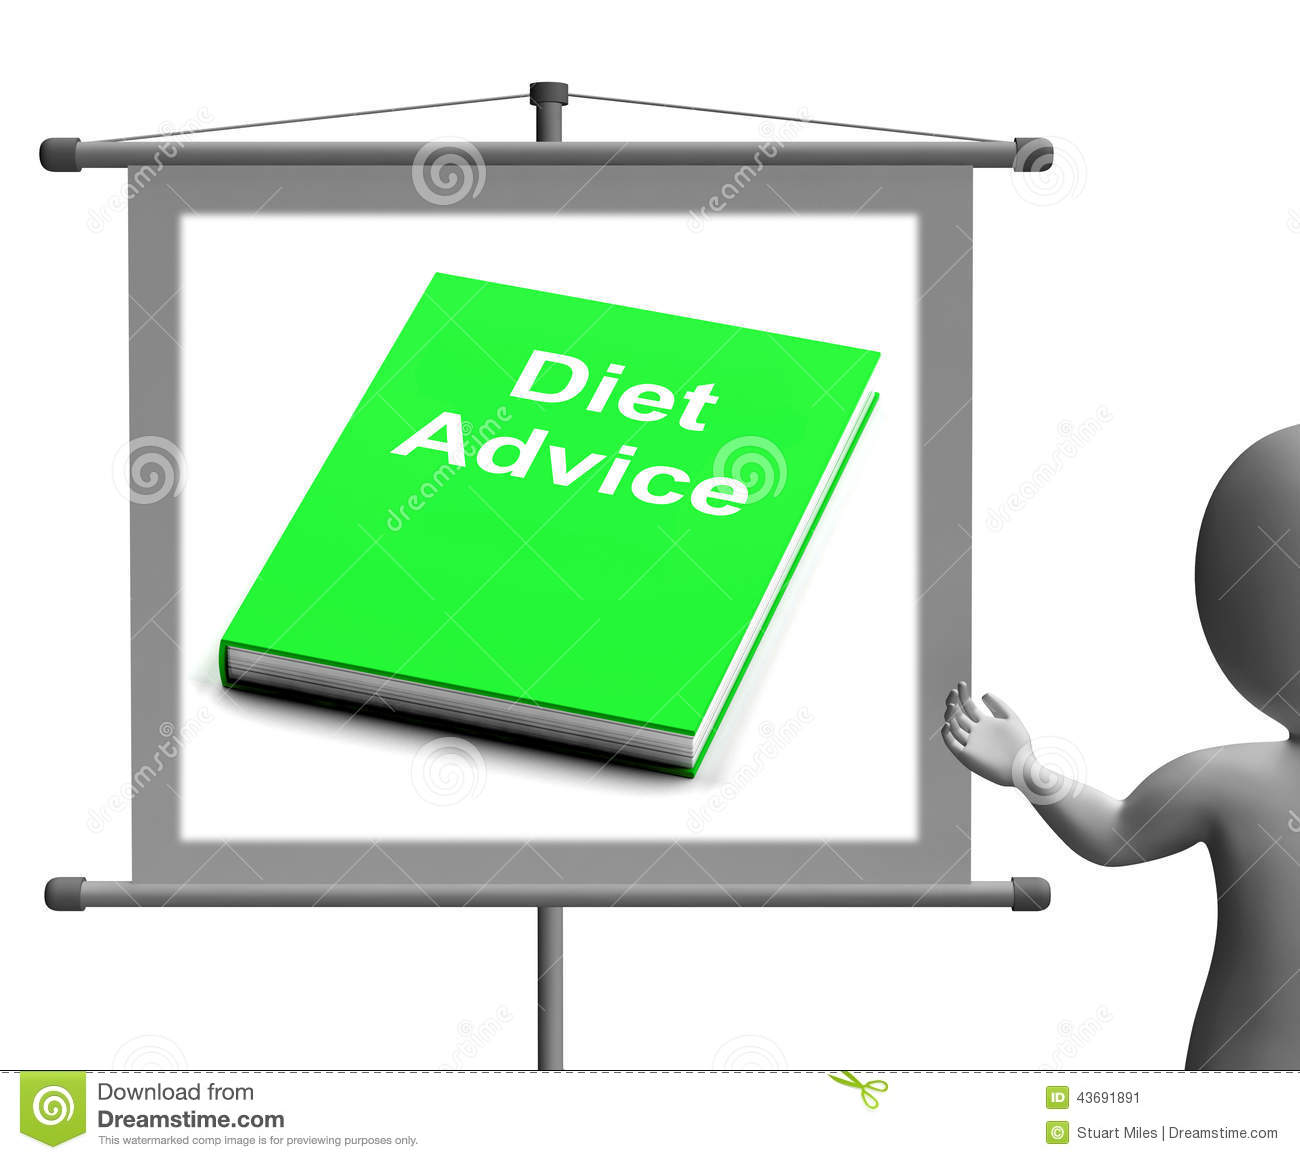 diet advice book sign shows weight loss knowledge stock illustration